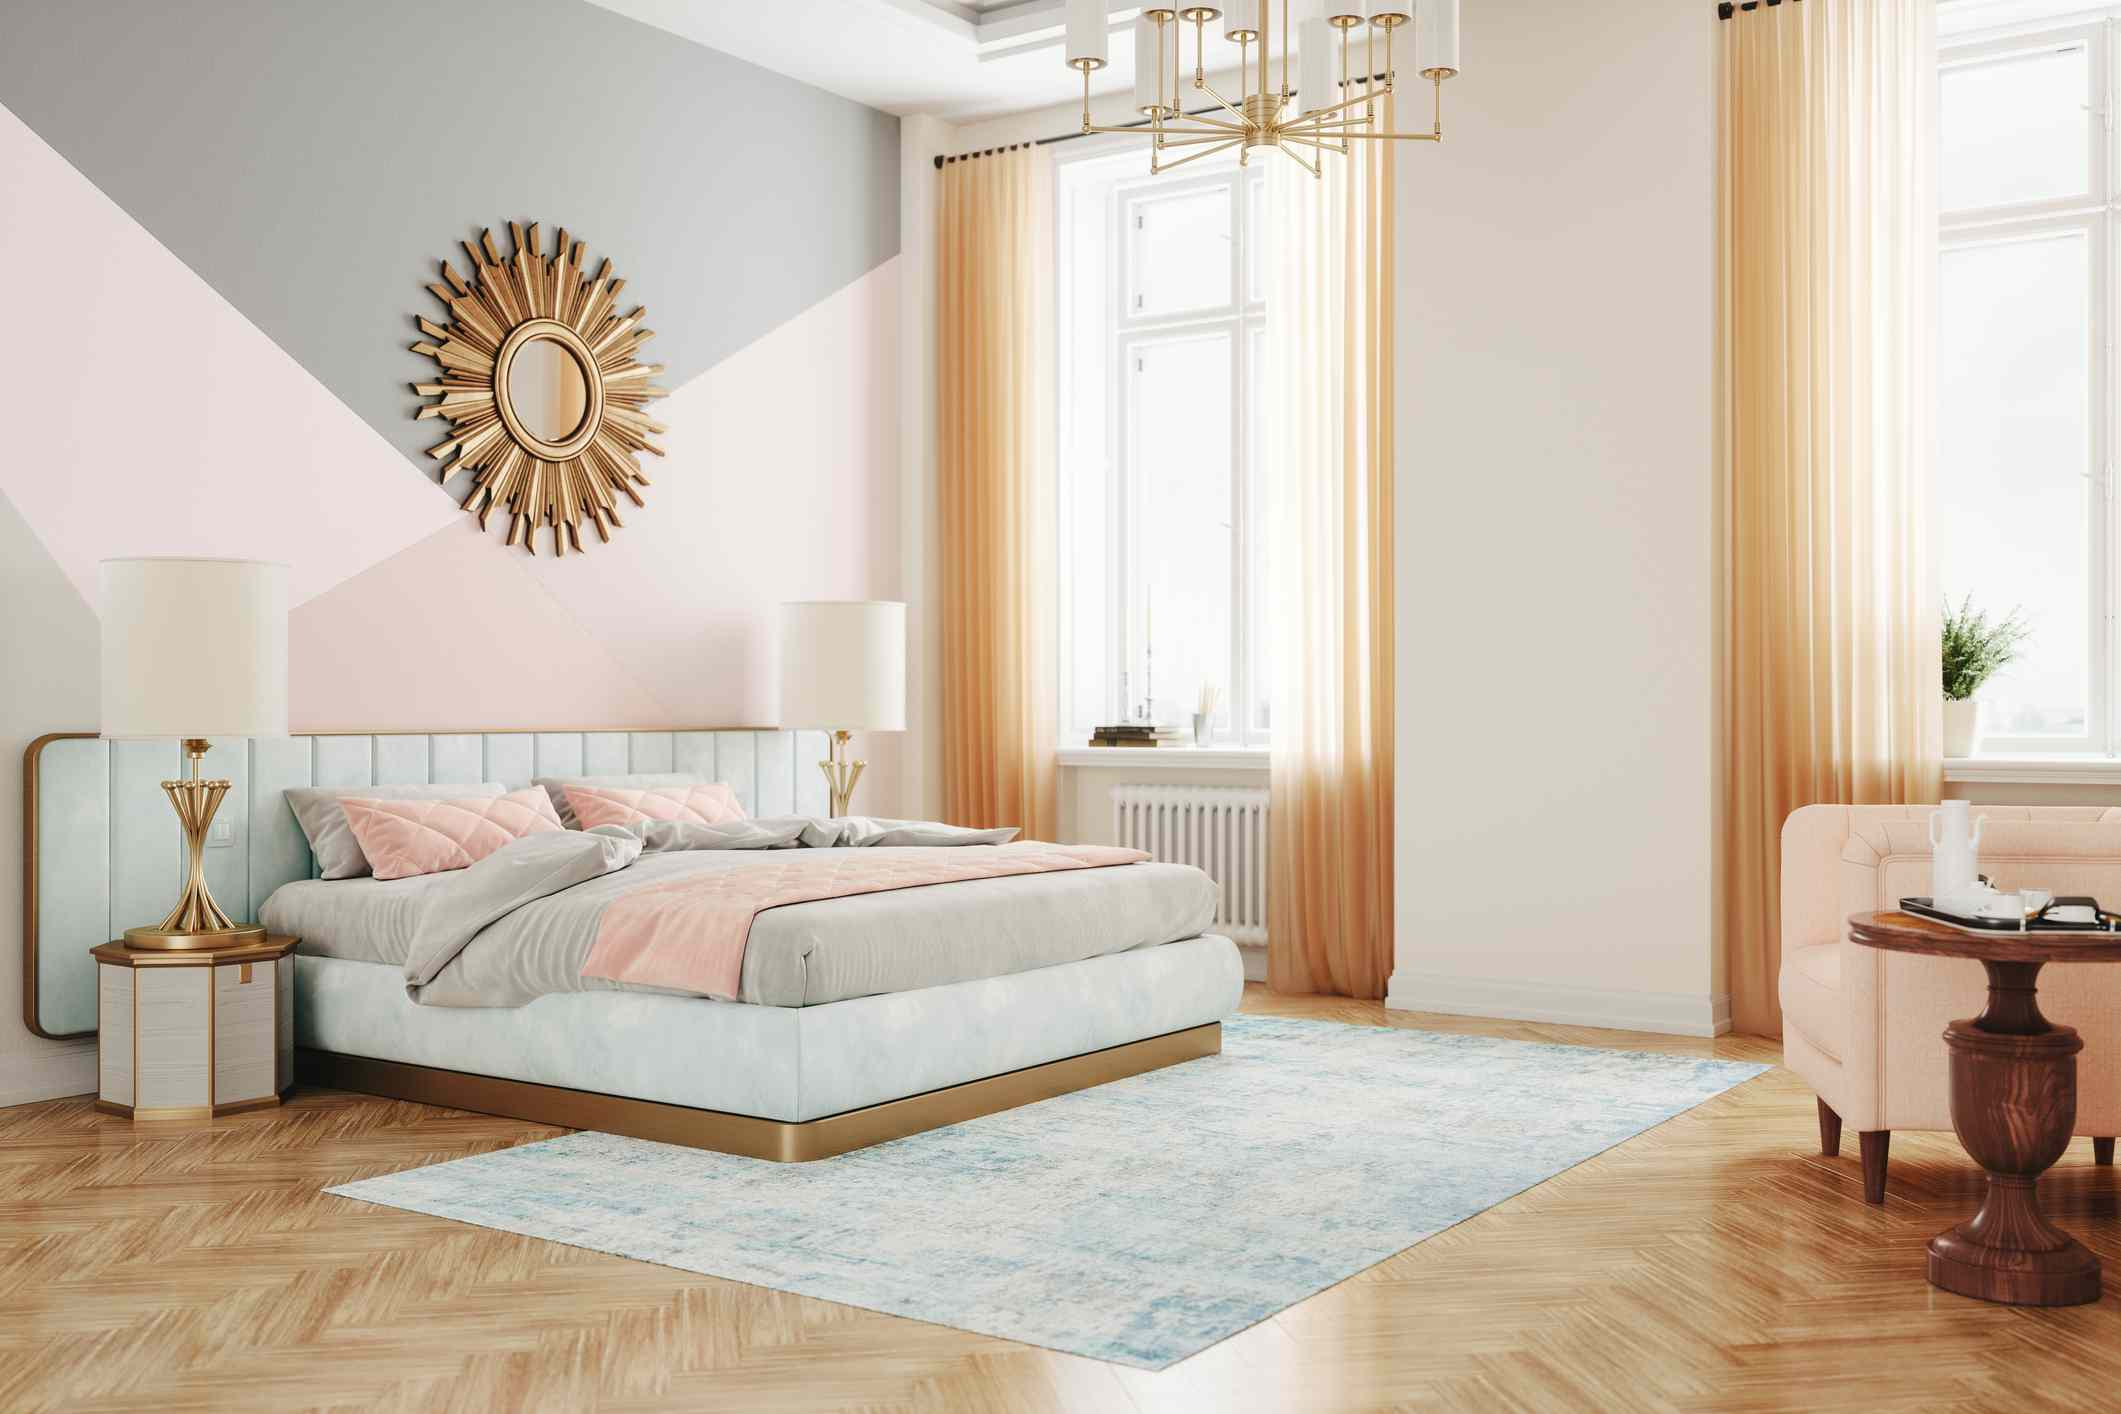 retro style bedroom in pastel colors